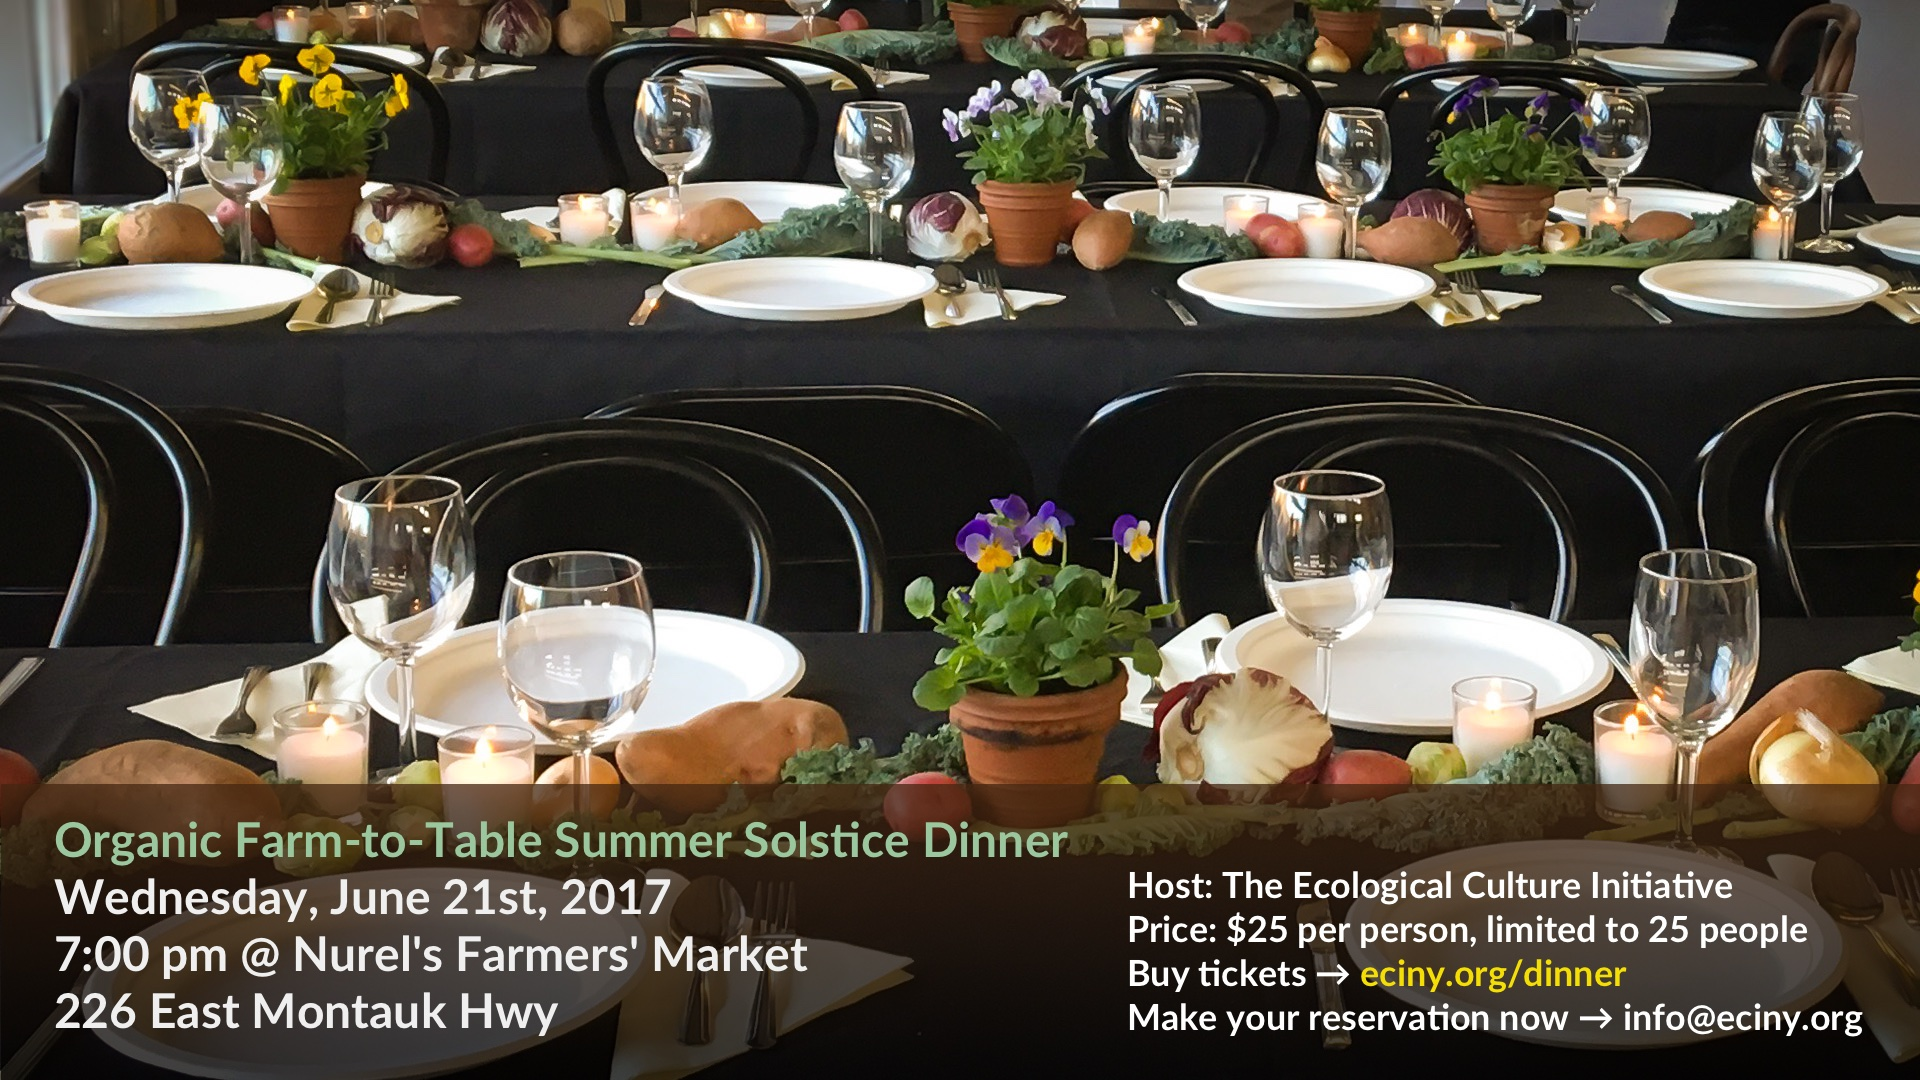 ECI Organic Farm-to-Table Summer Solstice Dinner - June 21st, 2017 - FB cover 1920x1080.jpg